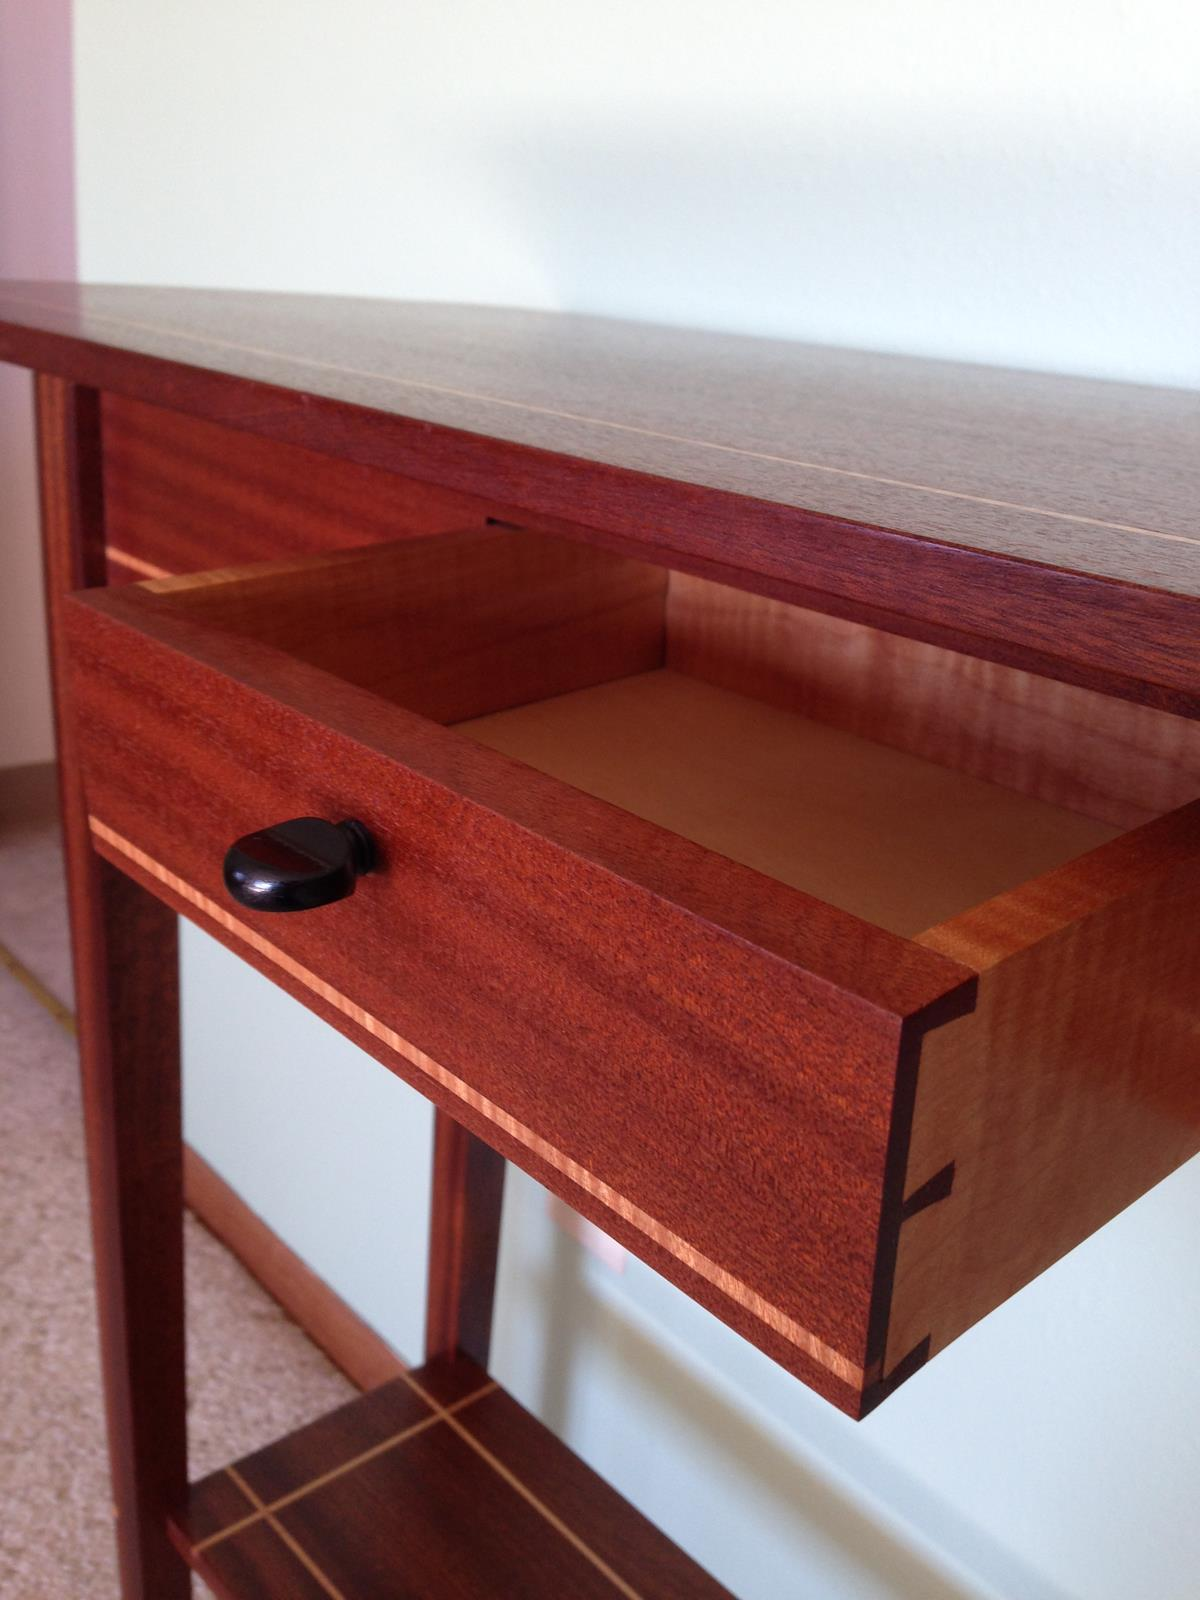 Sapele Table and Drawer with Violin Peg Drawer Pull - Hand-cut Dovetails